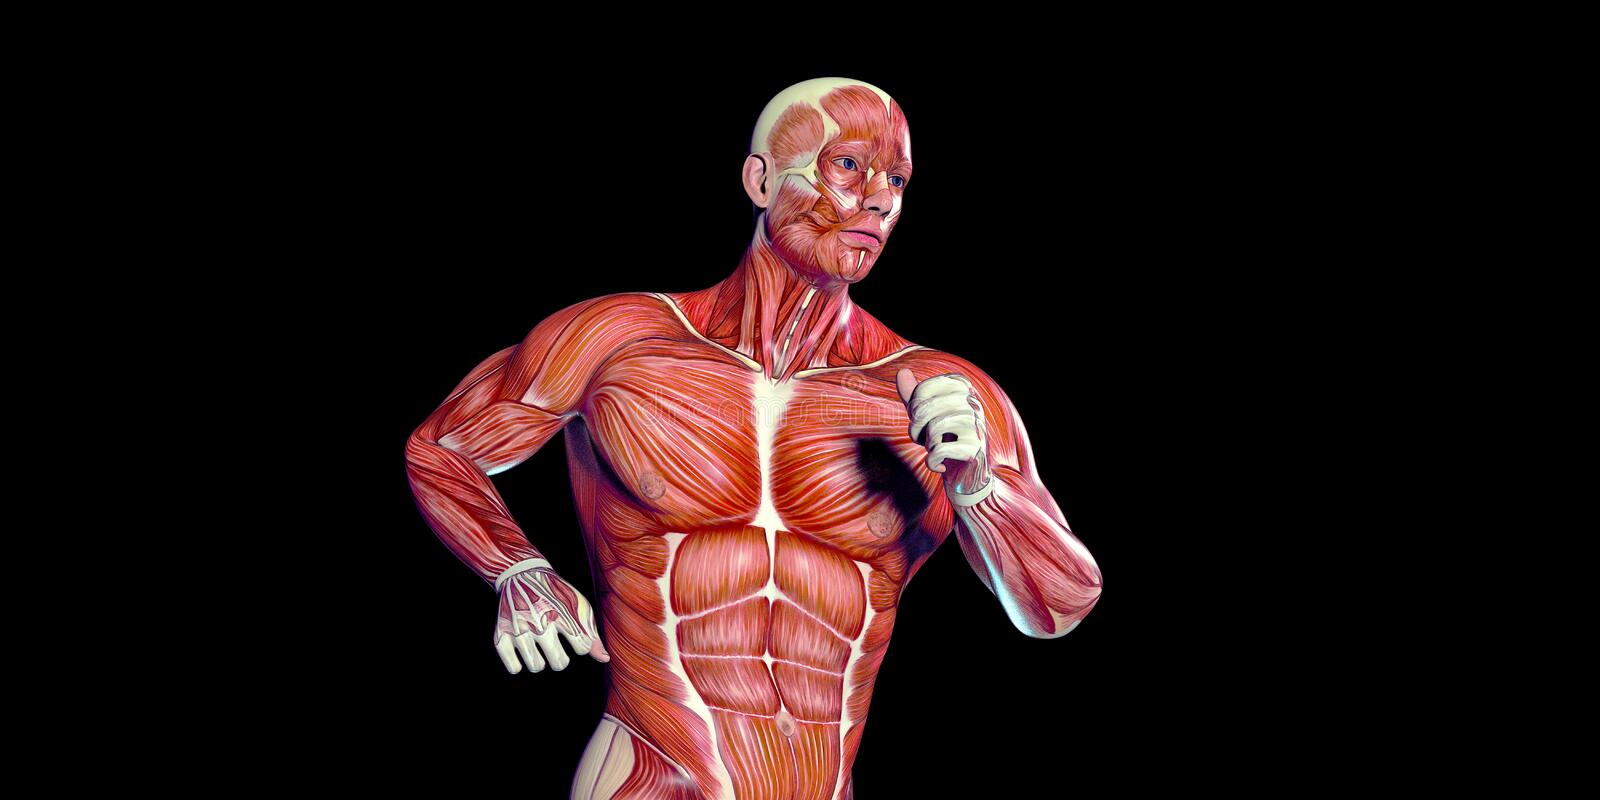 Human Male Body Anatomy Illustration of a human torso with visible muscles. Human Male head Anatomy Illustration with visible muscles and tendons stock illustration